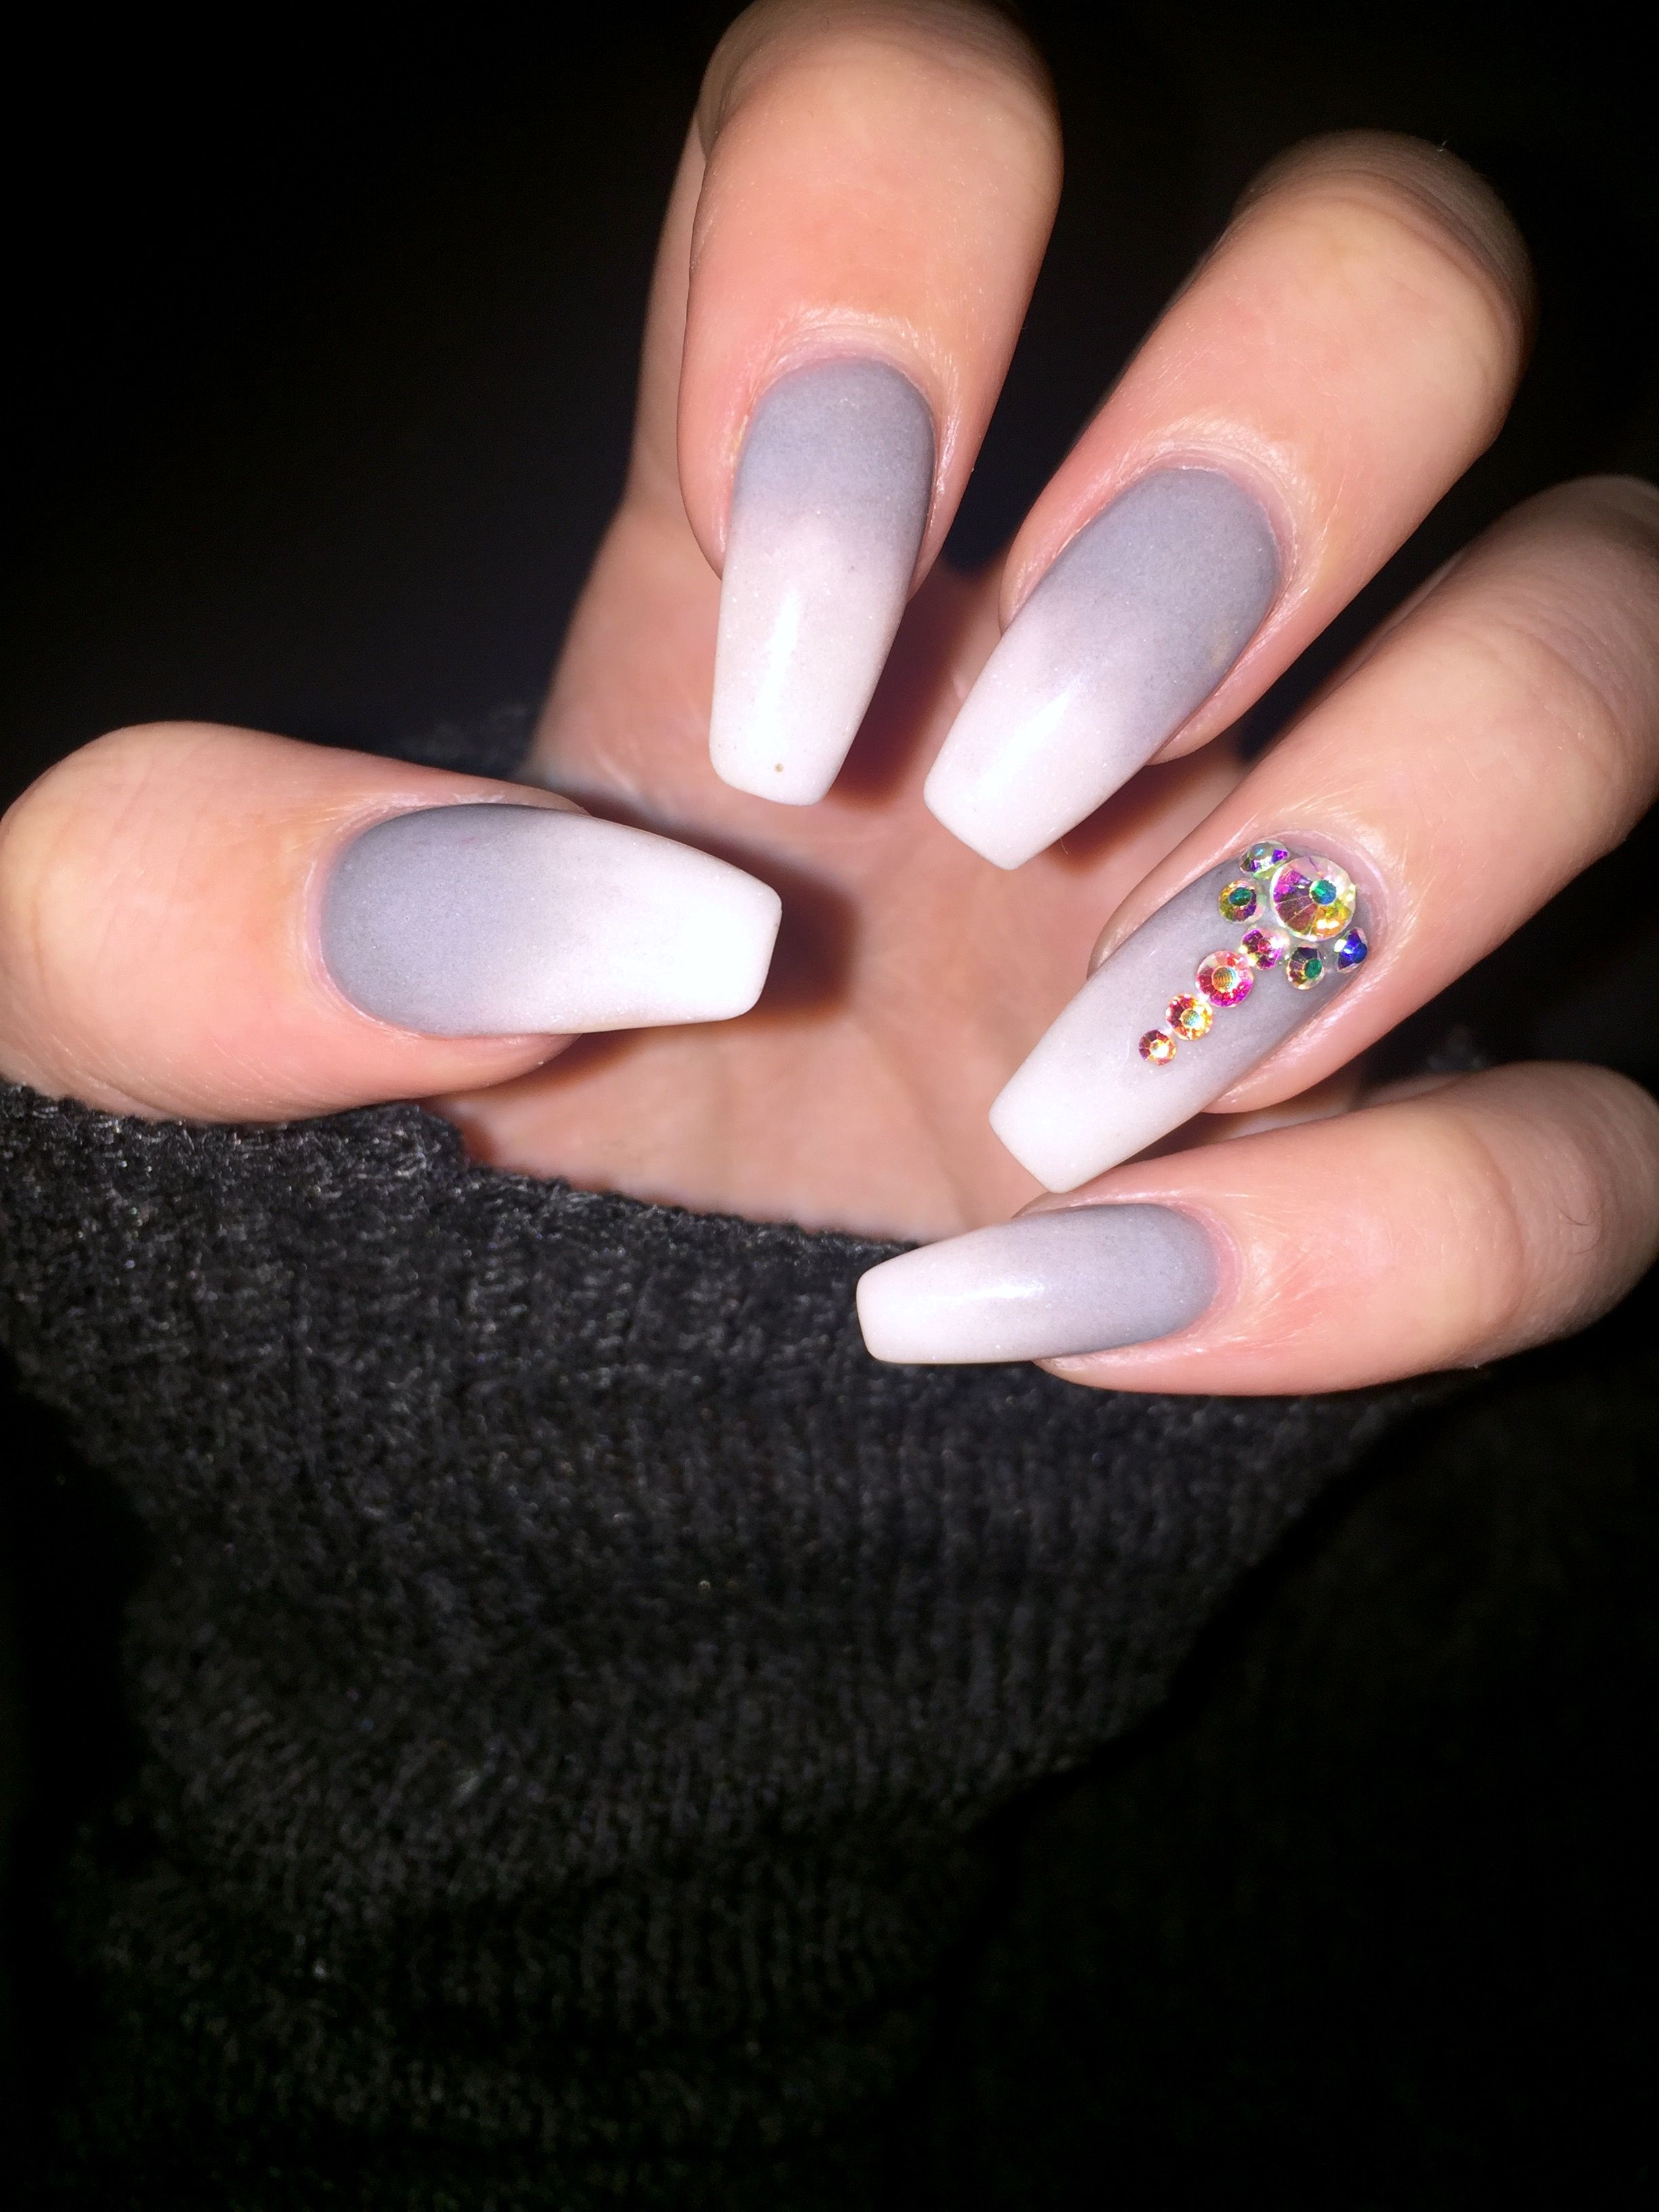 Grey Ombre Nails : ombre, nails, White, Ombre, Nails, Manicure, Trends